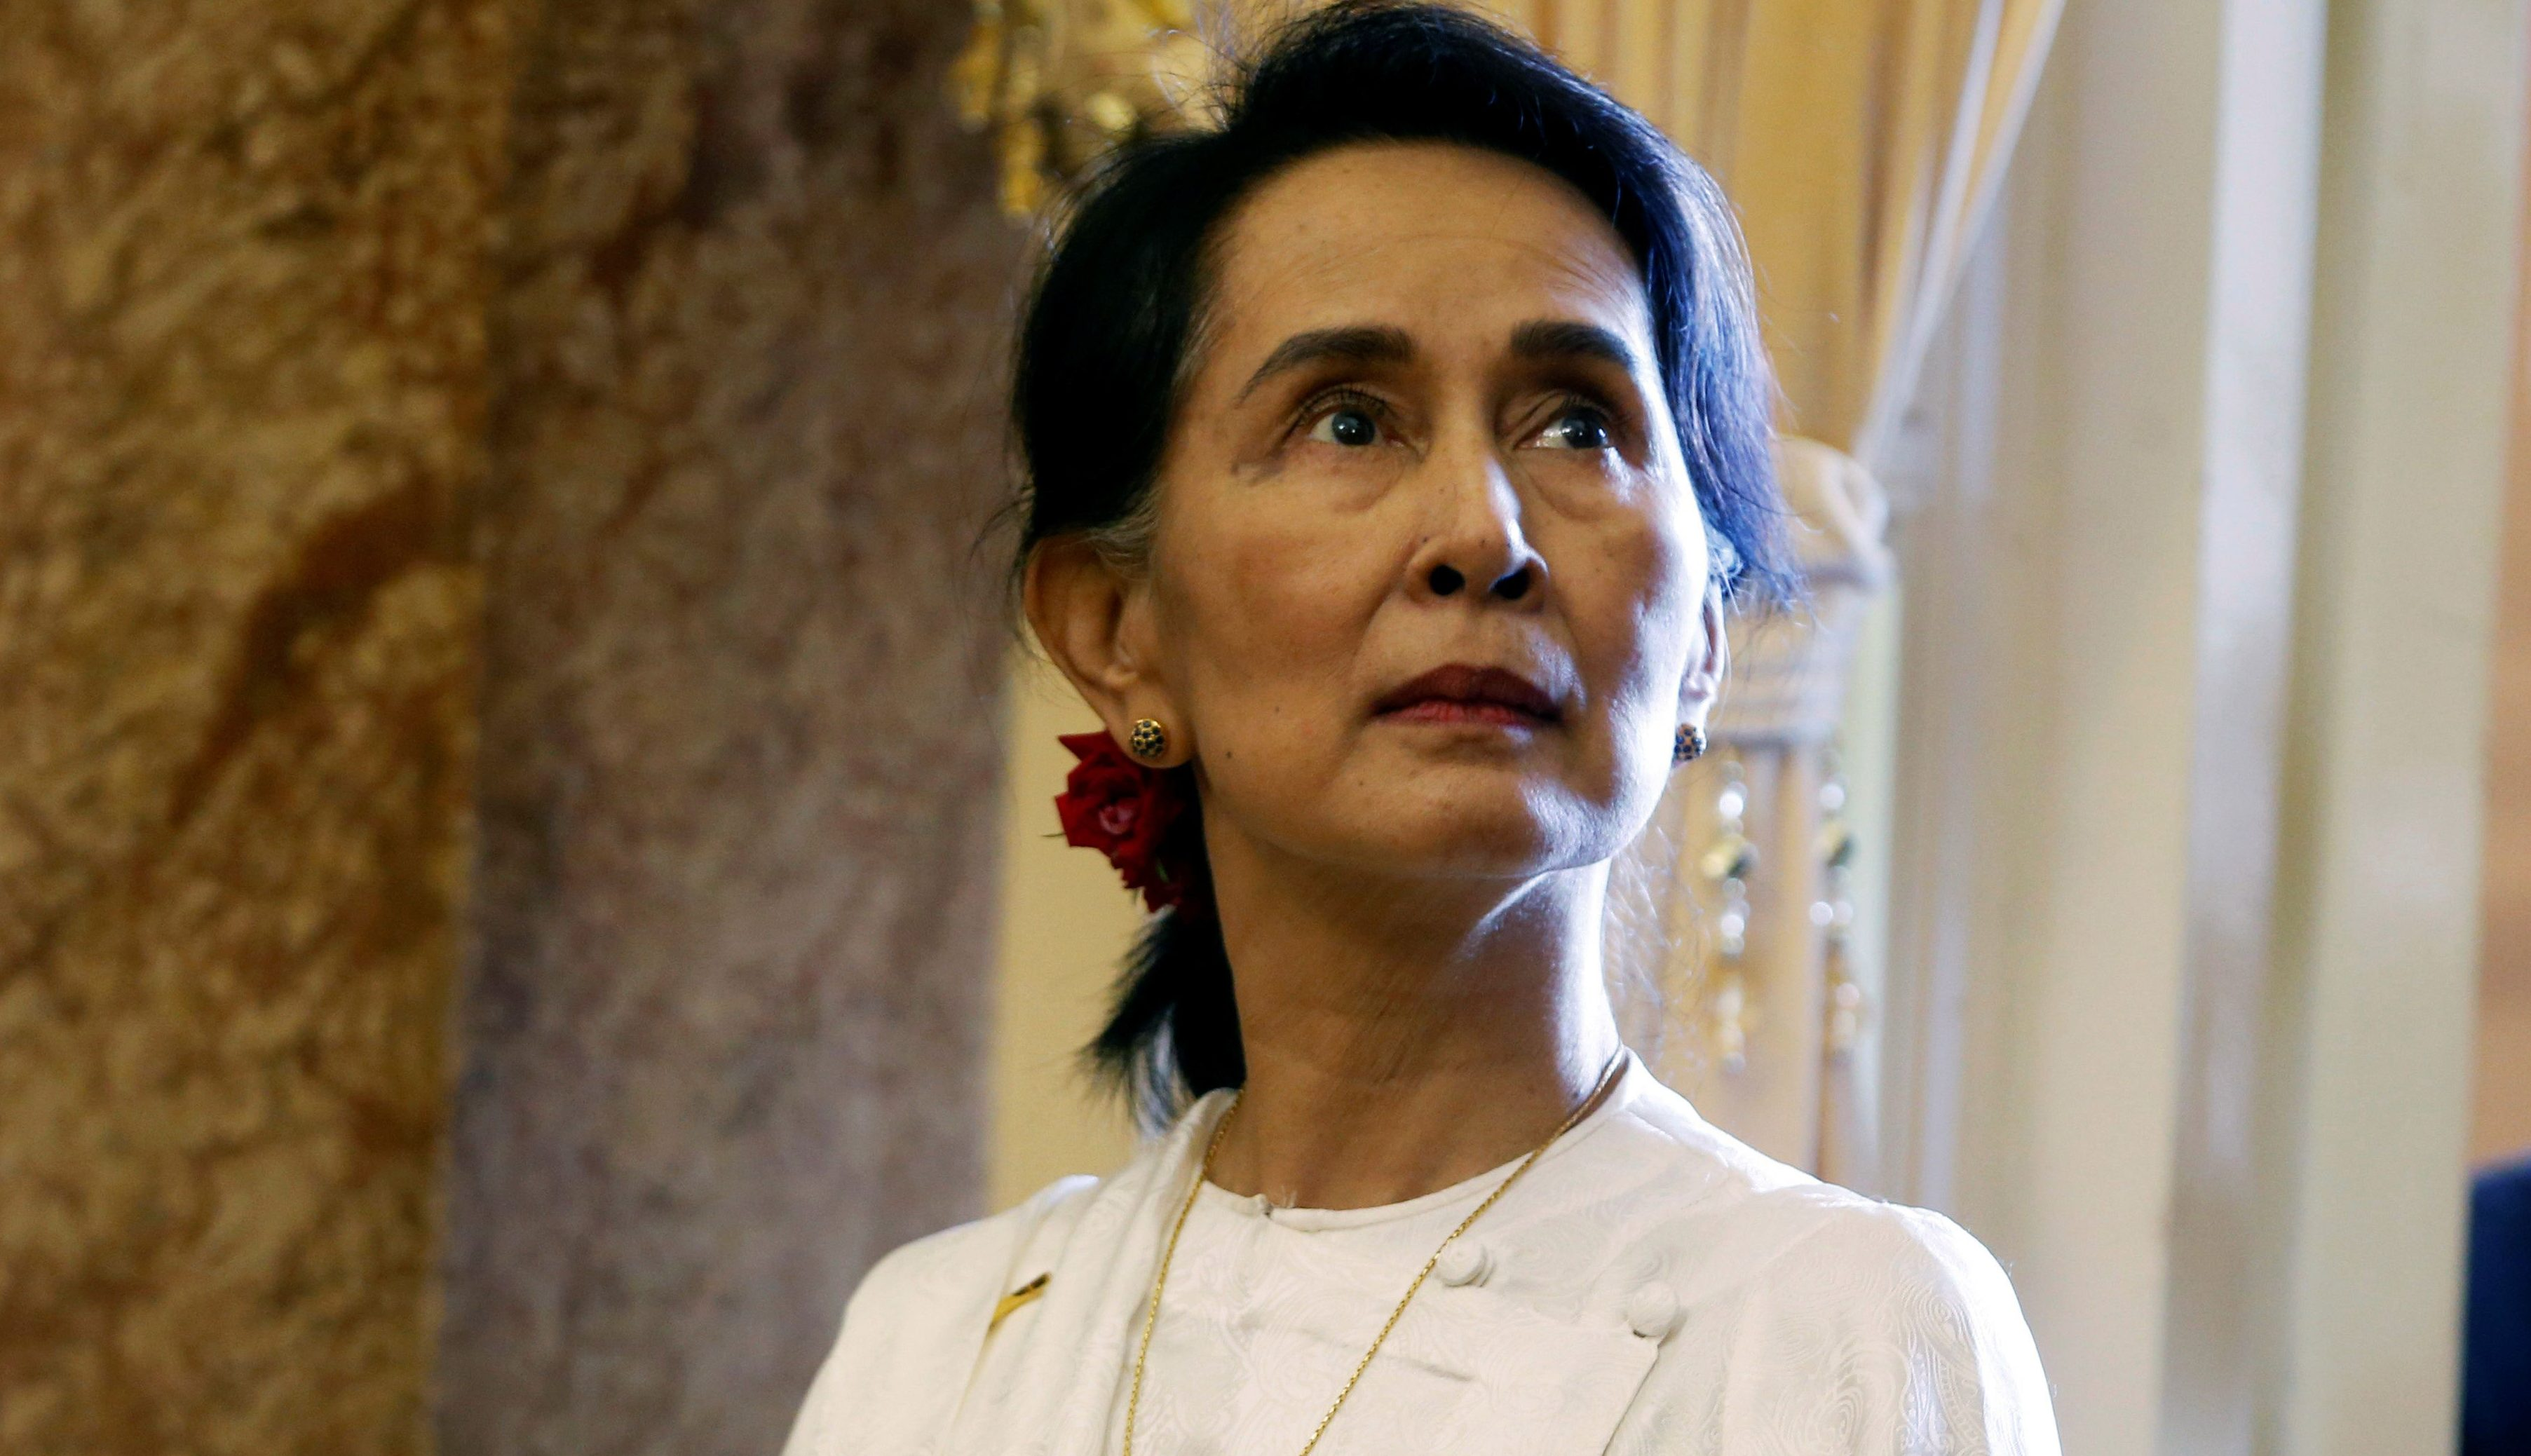 Myanmar's State Counsellor Aung San Suu Kyi is seen while she waits for a meeting with Vietnam's President Tran Dai Quang (not pictured) at the Presidential Palace during the World Economic Forum on ASEAN in Hanoi, Vietnam September 13, 2018. REUTERS/Kham/Pool - RC18BB447E10